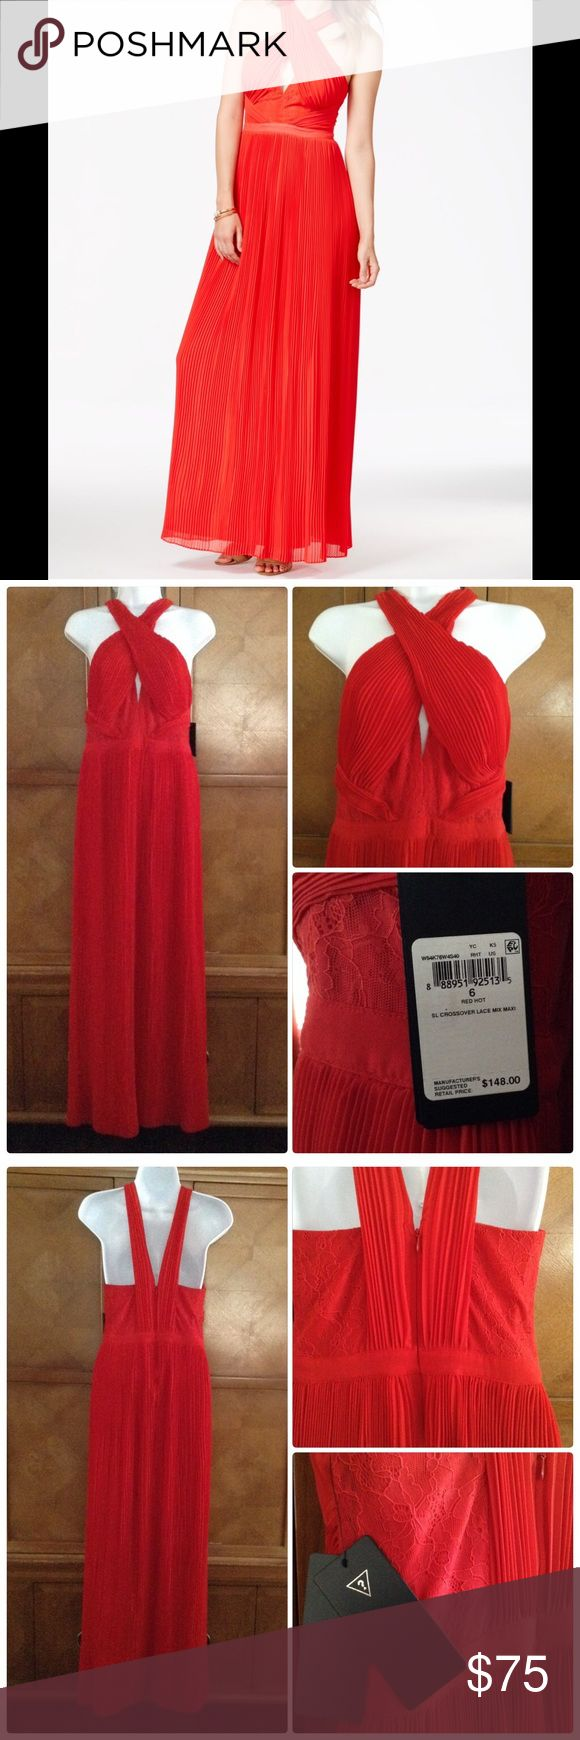 "Lady In Red (Guess Dress) Look stunning in this red maxi dress. Pleated cross-front high neck dress. Has cut out at bust (see pics). Never been worn. Measurements: Length=59"". Empire Waist=14"". Underarm to underarm=16"". Guess Dresses Maxi"